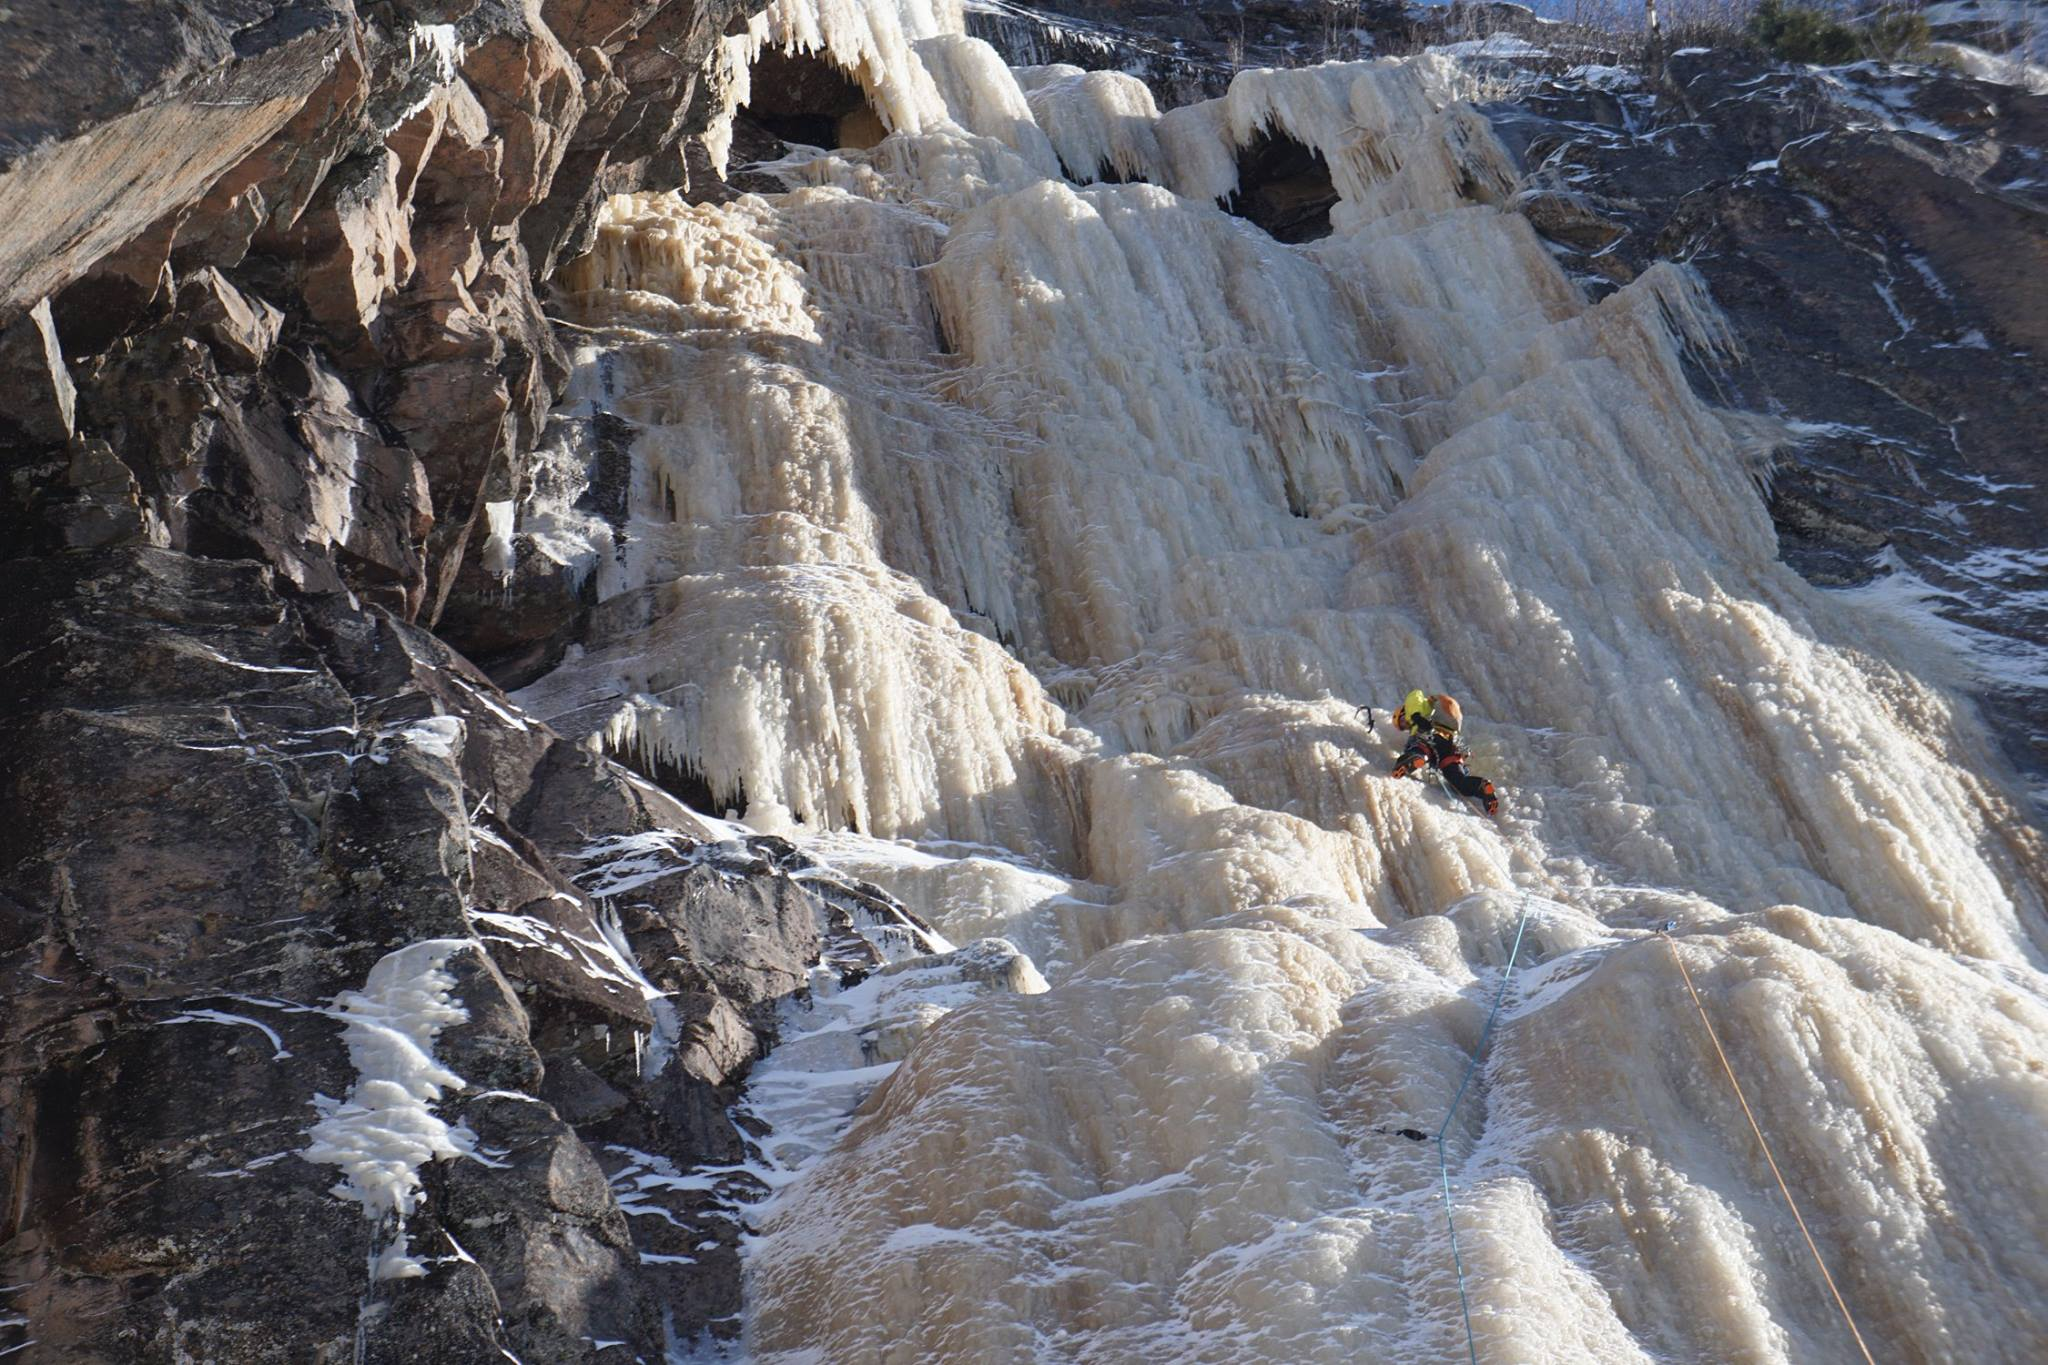 J.P. Belanger climbing at -40F on another Beaudet classic called La Goulotte de M. Felix. [Photo] Pete Takeda